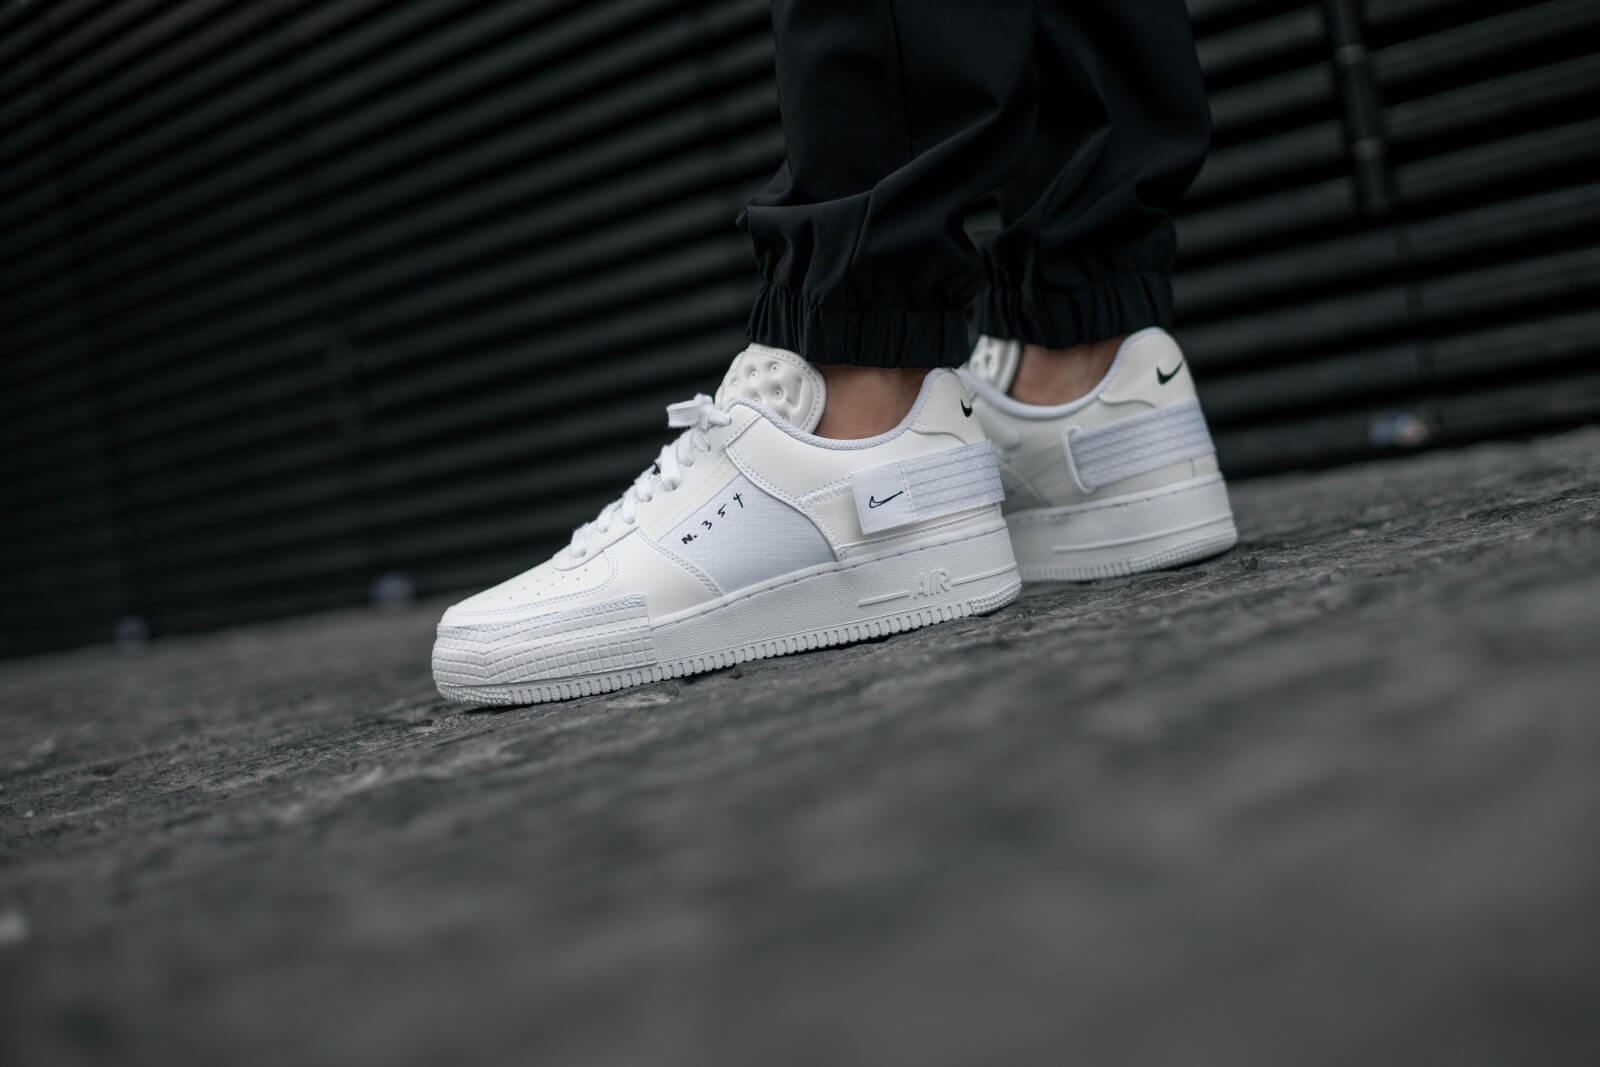 Nike Air Force 1 Type White/White